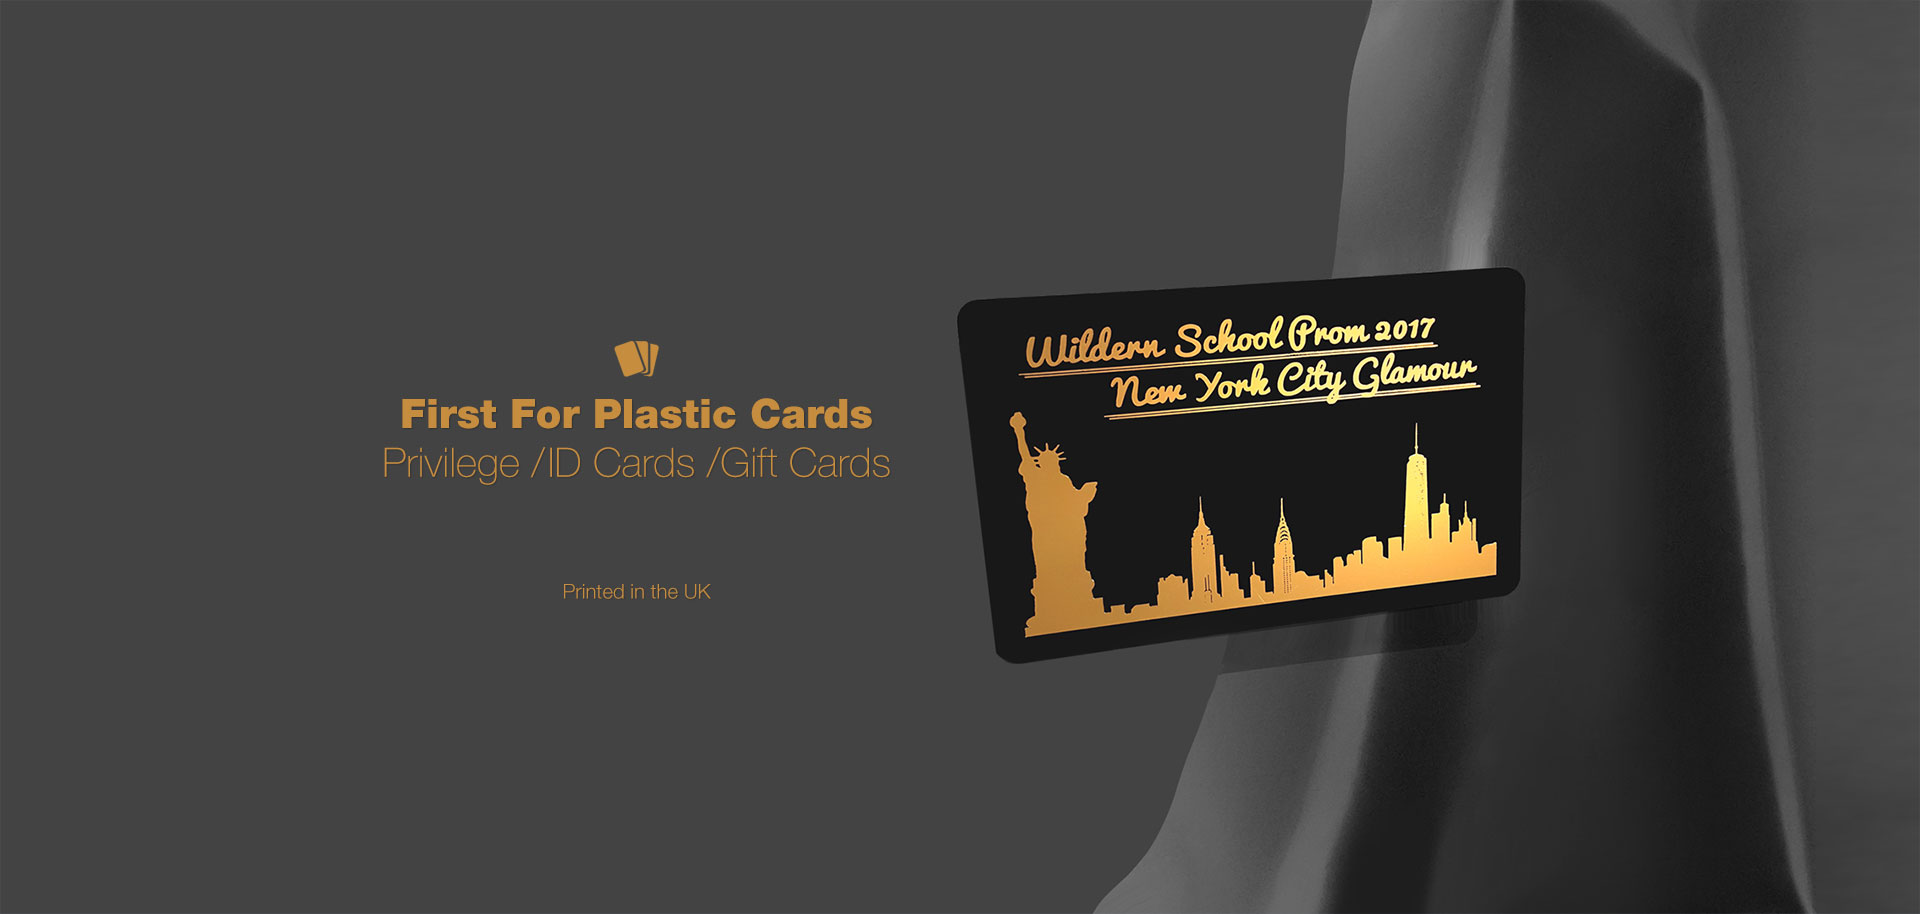 Matt Black Plastic Cards - Our matt black plastic cards are all printed in the UK. Easy ordering and Fast turnaround.